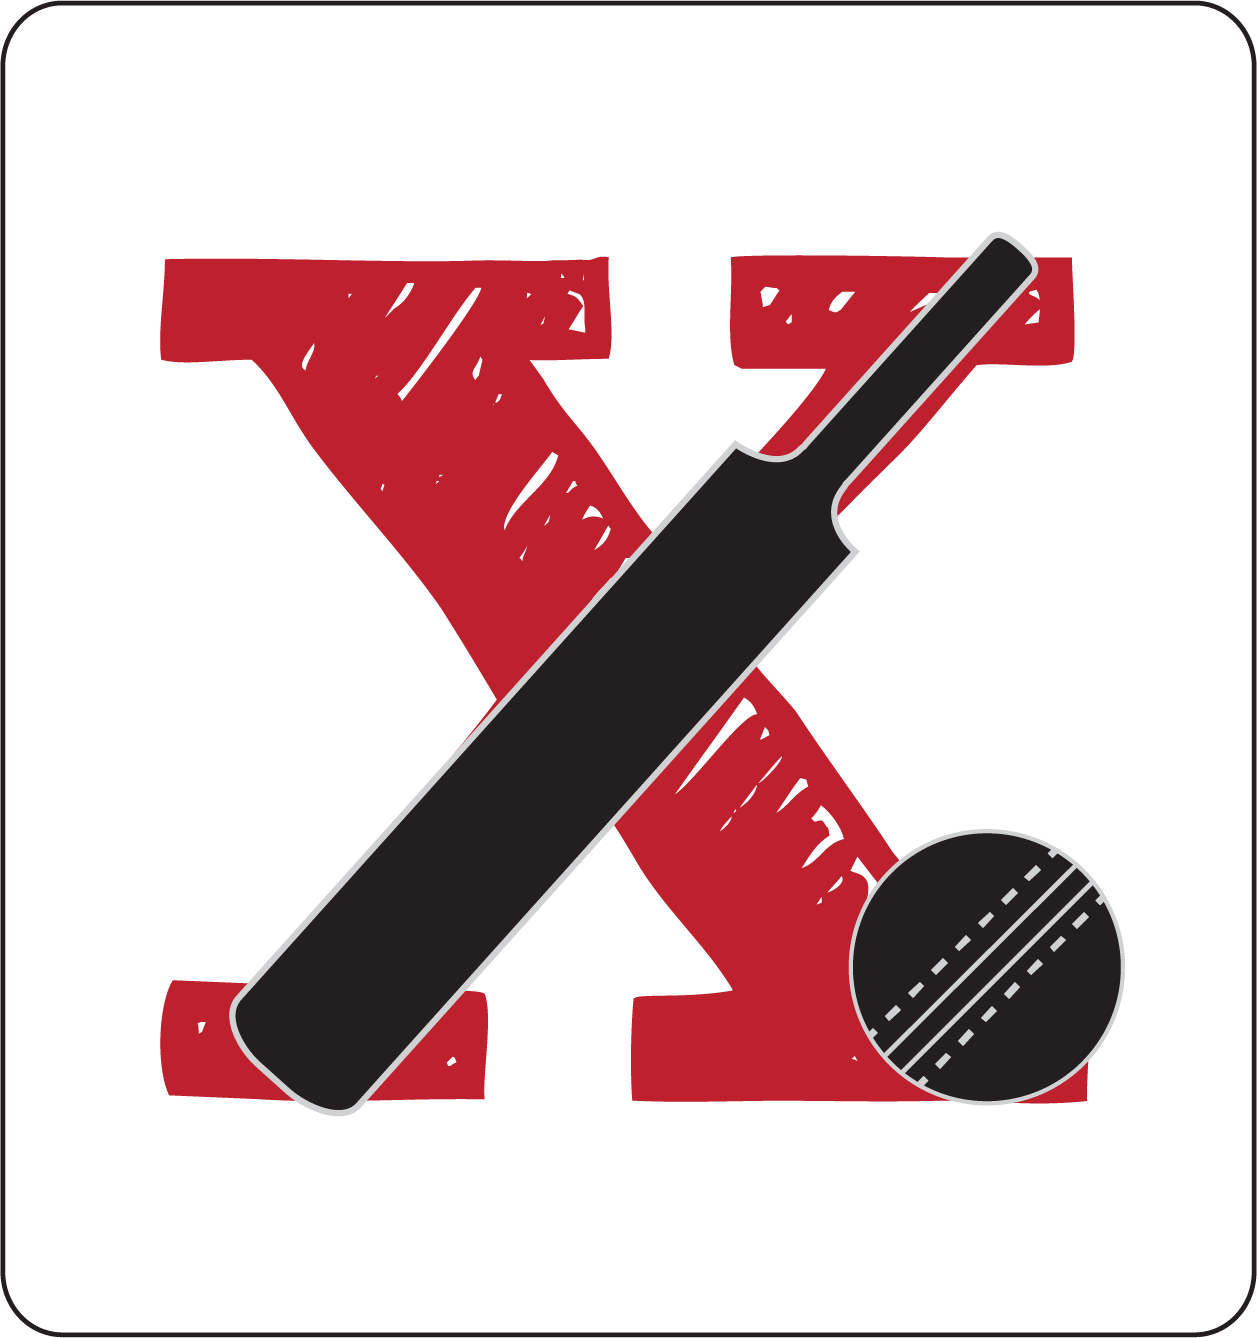 crossbats_cricket_club